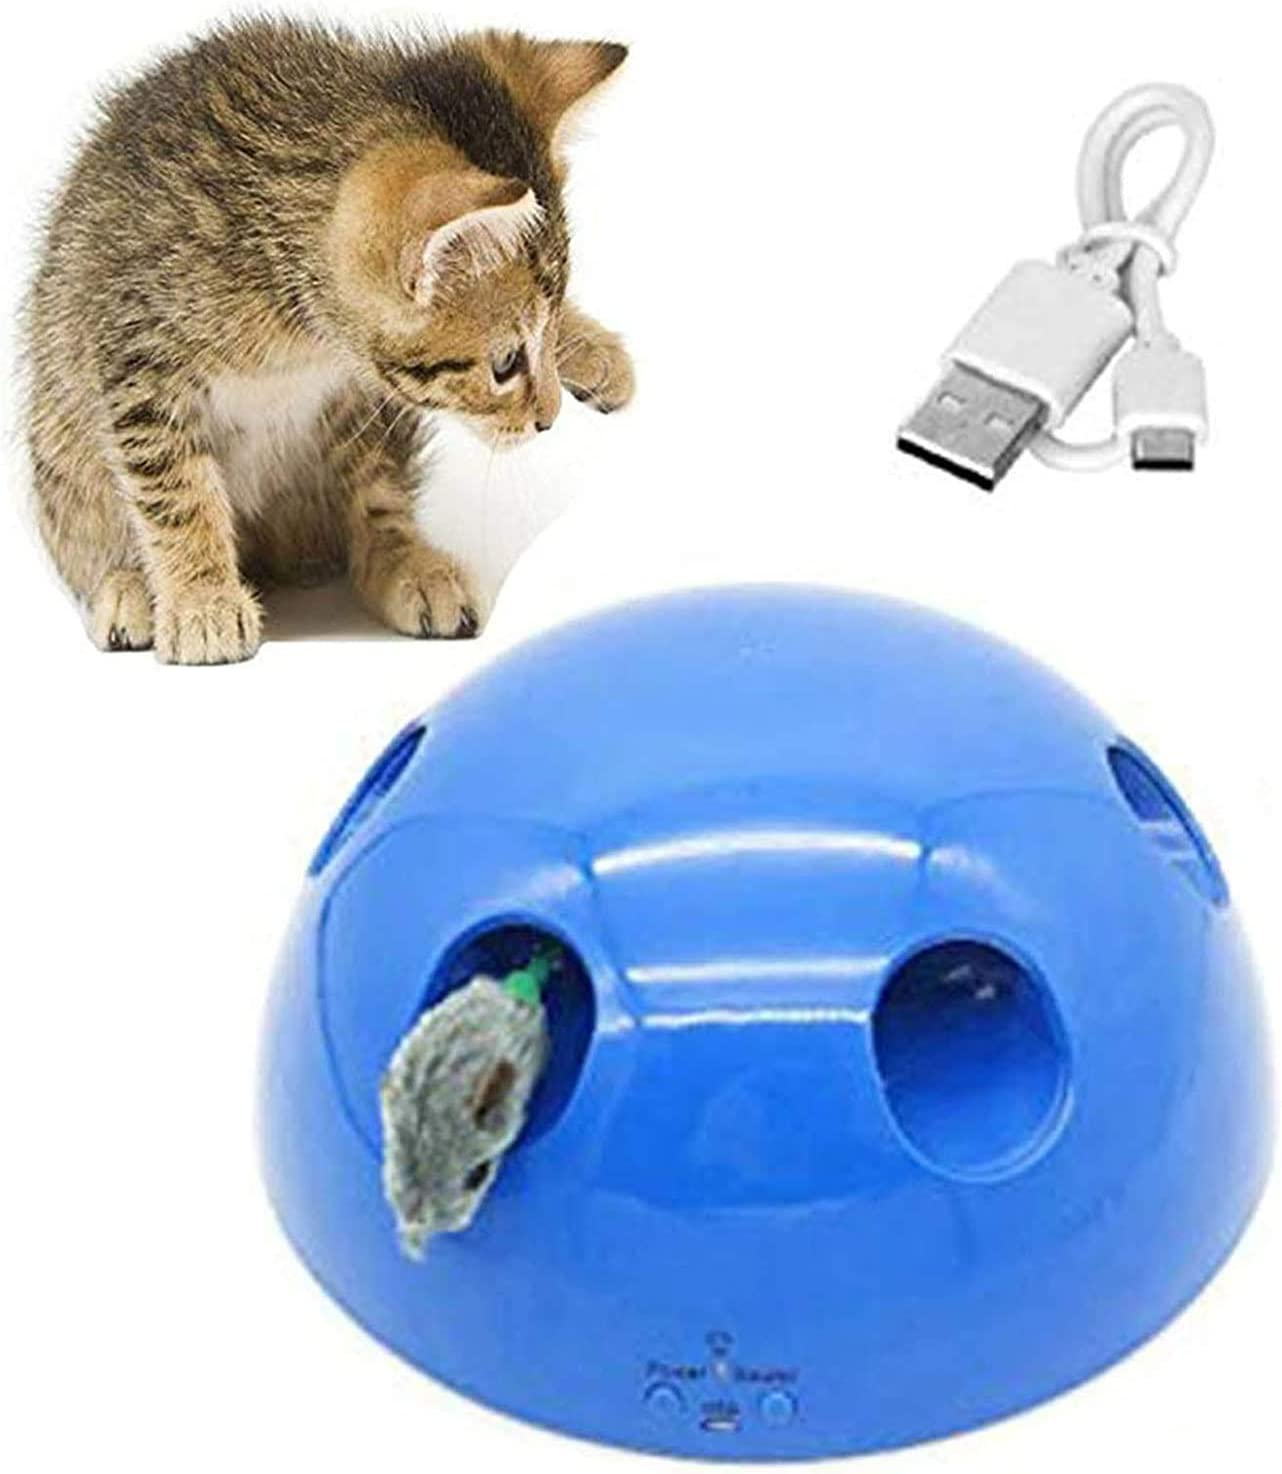 Swvzwy Pop And Play Cat Toy Cat Toys For Indoor Cats Interactive Presents For Cats Usb Blue Amazon Co Uk Pet Supplies